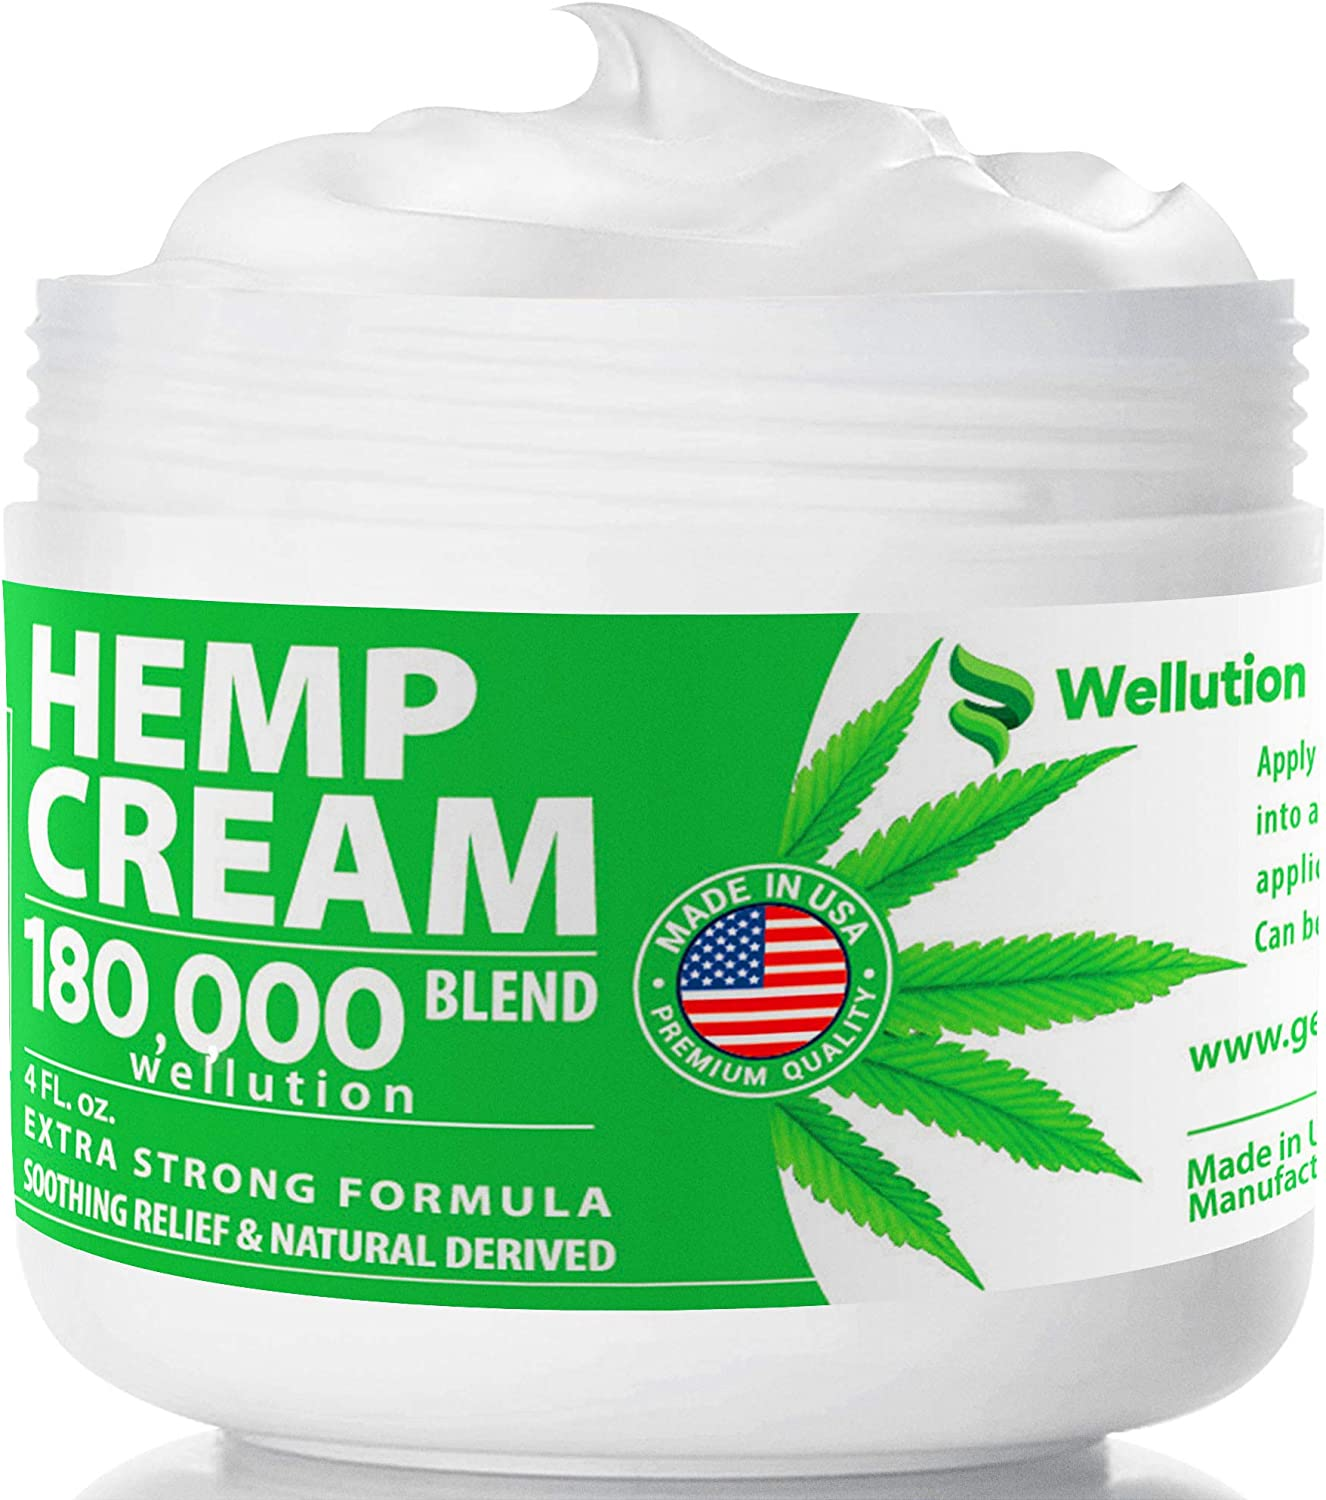 Hemp Cream 180,000 Blend – All-Natural Seed Oil Extract for Knee, Lower Back, Feet, Wrist and Joint Pain Relief - Extra Strength Massage Lotion with Arnica, Menthol and Organic Oils